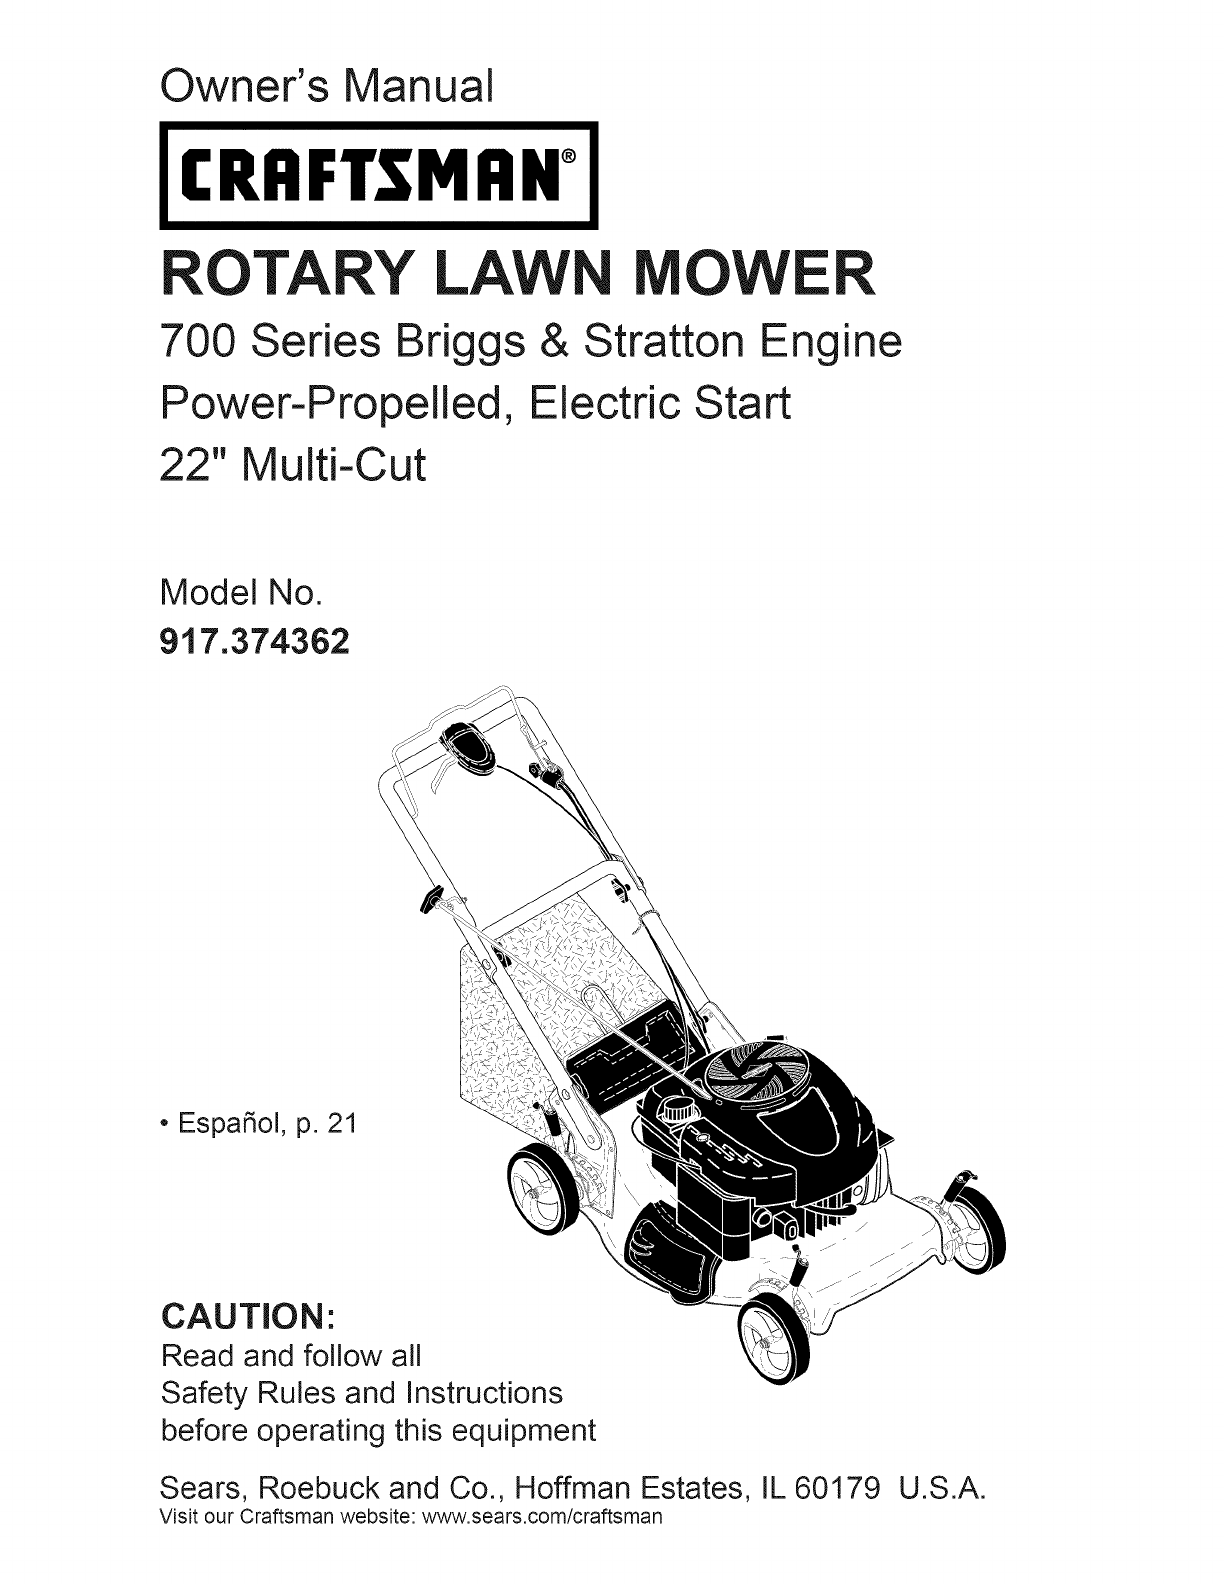 Craftsman Lawn Mower 917374362 User Guide Manualsonlinecom Briggs And Stratton 17 5 Hp Engine Diagram